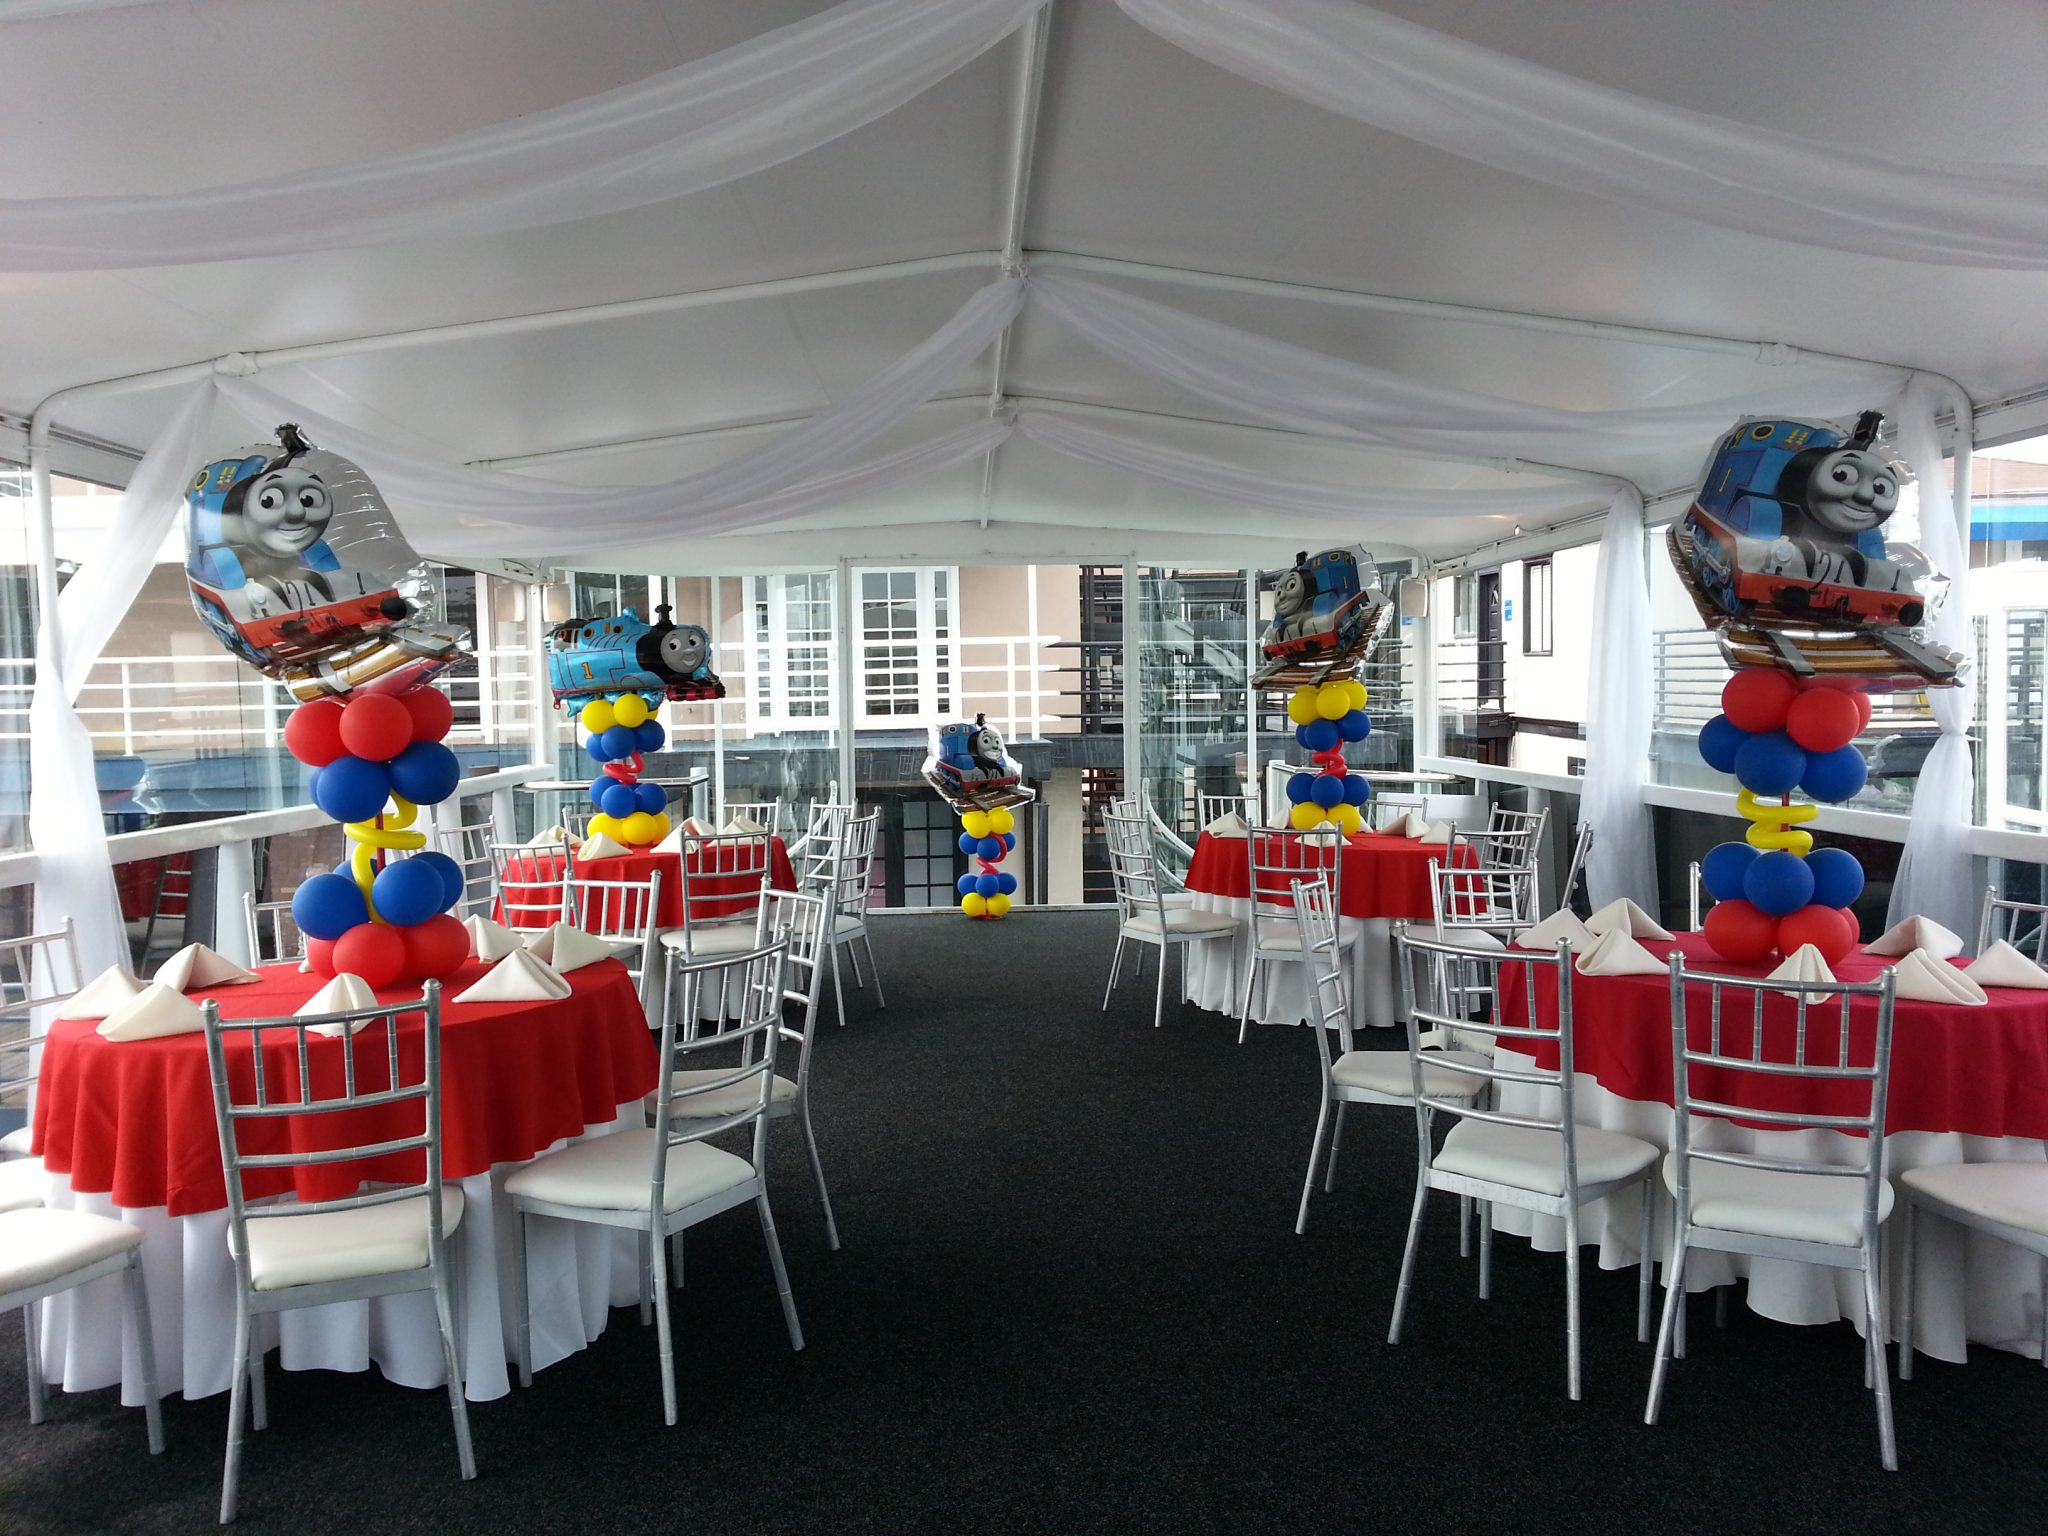 Strange Thomas The Train Balloon Centerpieces Balloons Party Home Interior And Landscaping Sapresignezvosmurscom